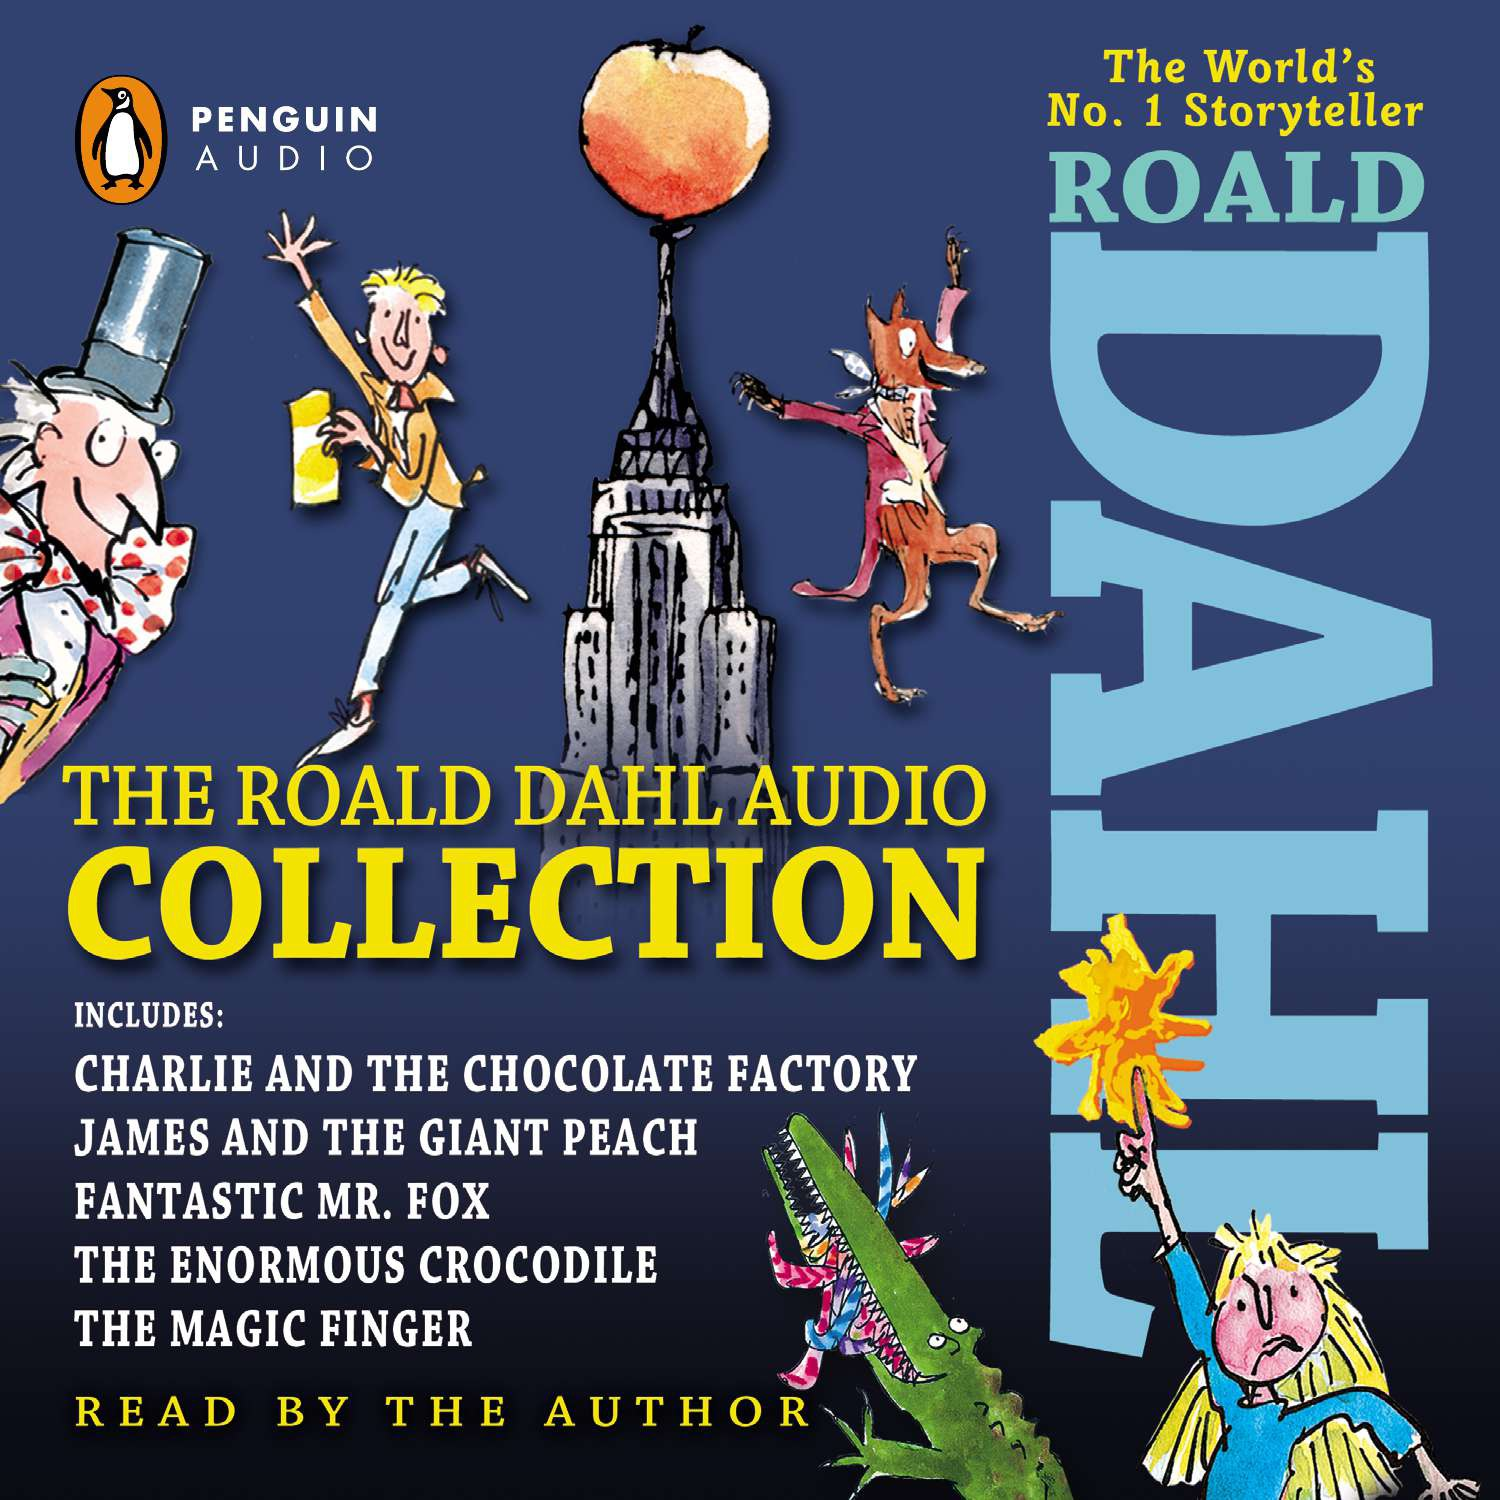 The Roald Dahl Audio Collection : Includes Charlie and the Chocolate Factory, James & the Giant Peach, Fantastic M r. Fox, The Enormous Crocodile & The Magic Finger